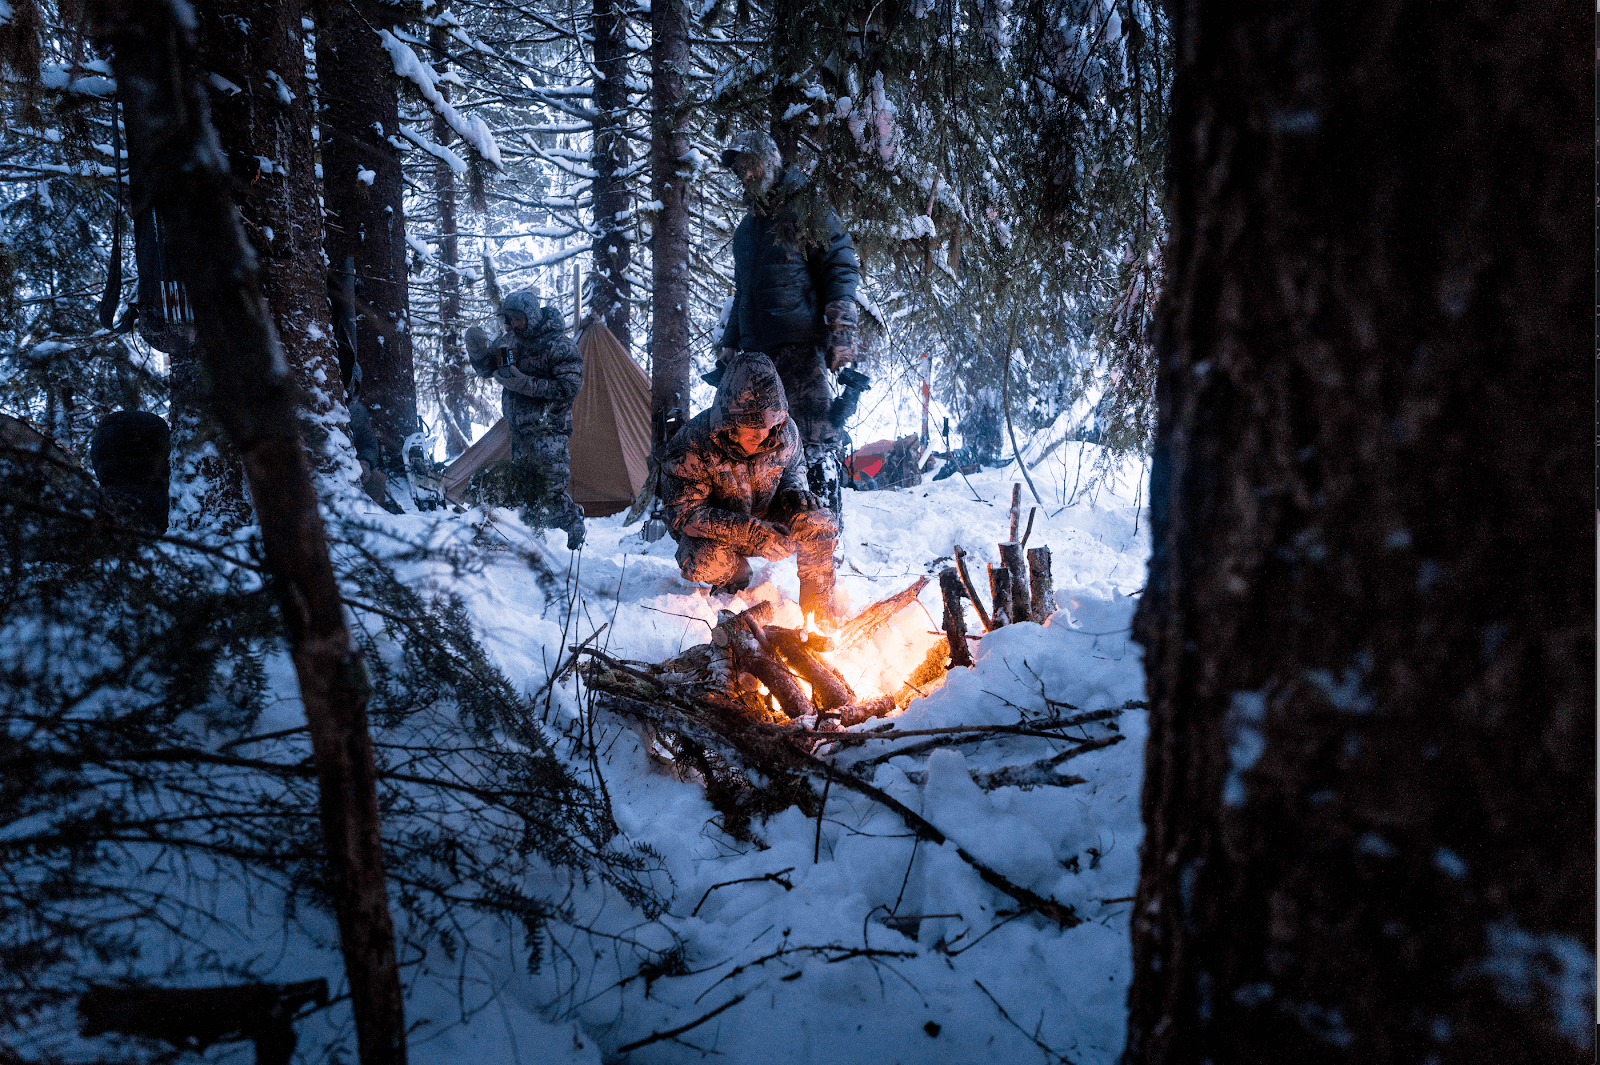 Hunters warm up next to a fire in the snow.